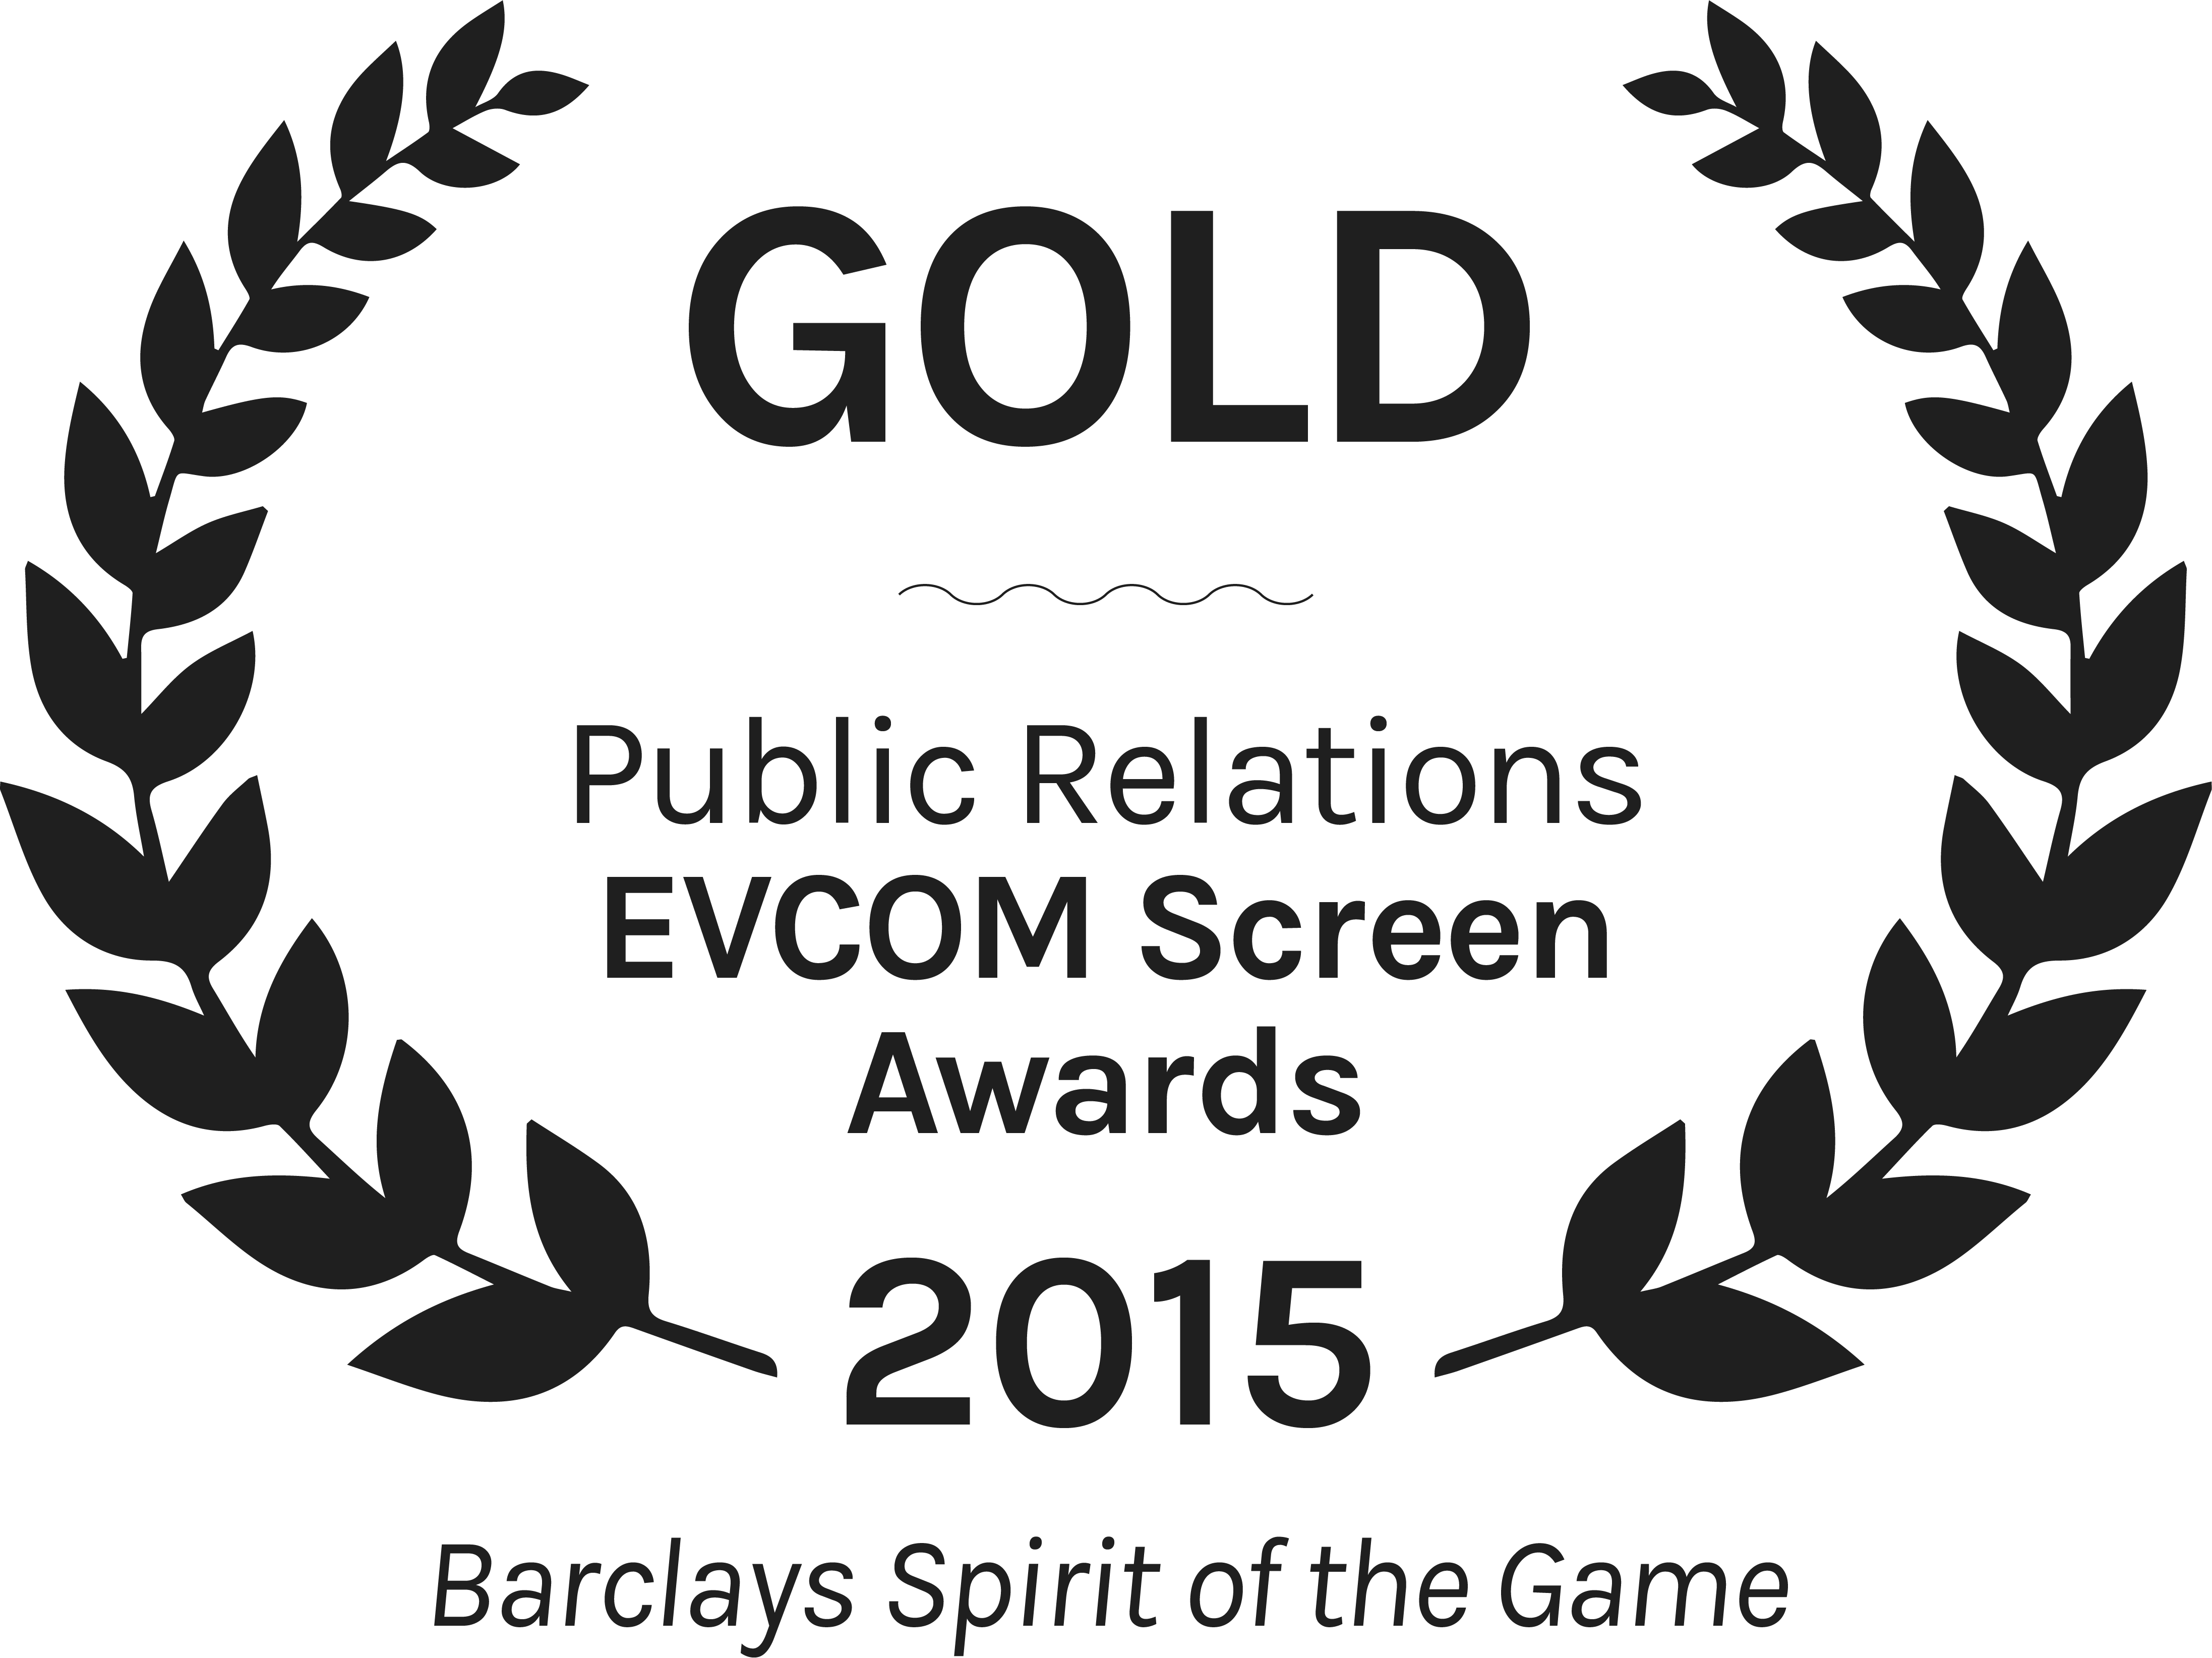 Barclays-Spirit-of-the-Game-Gold-Public-Relations-EVCOM-Screen-Awards-2015.png